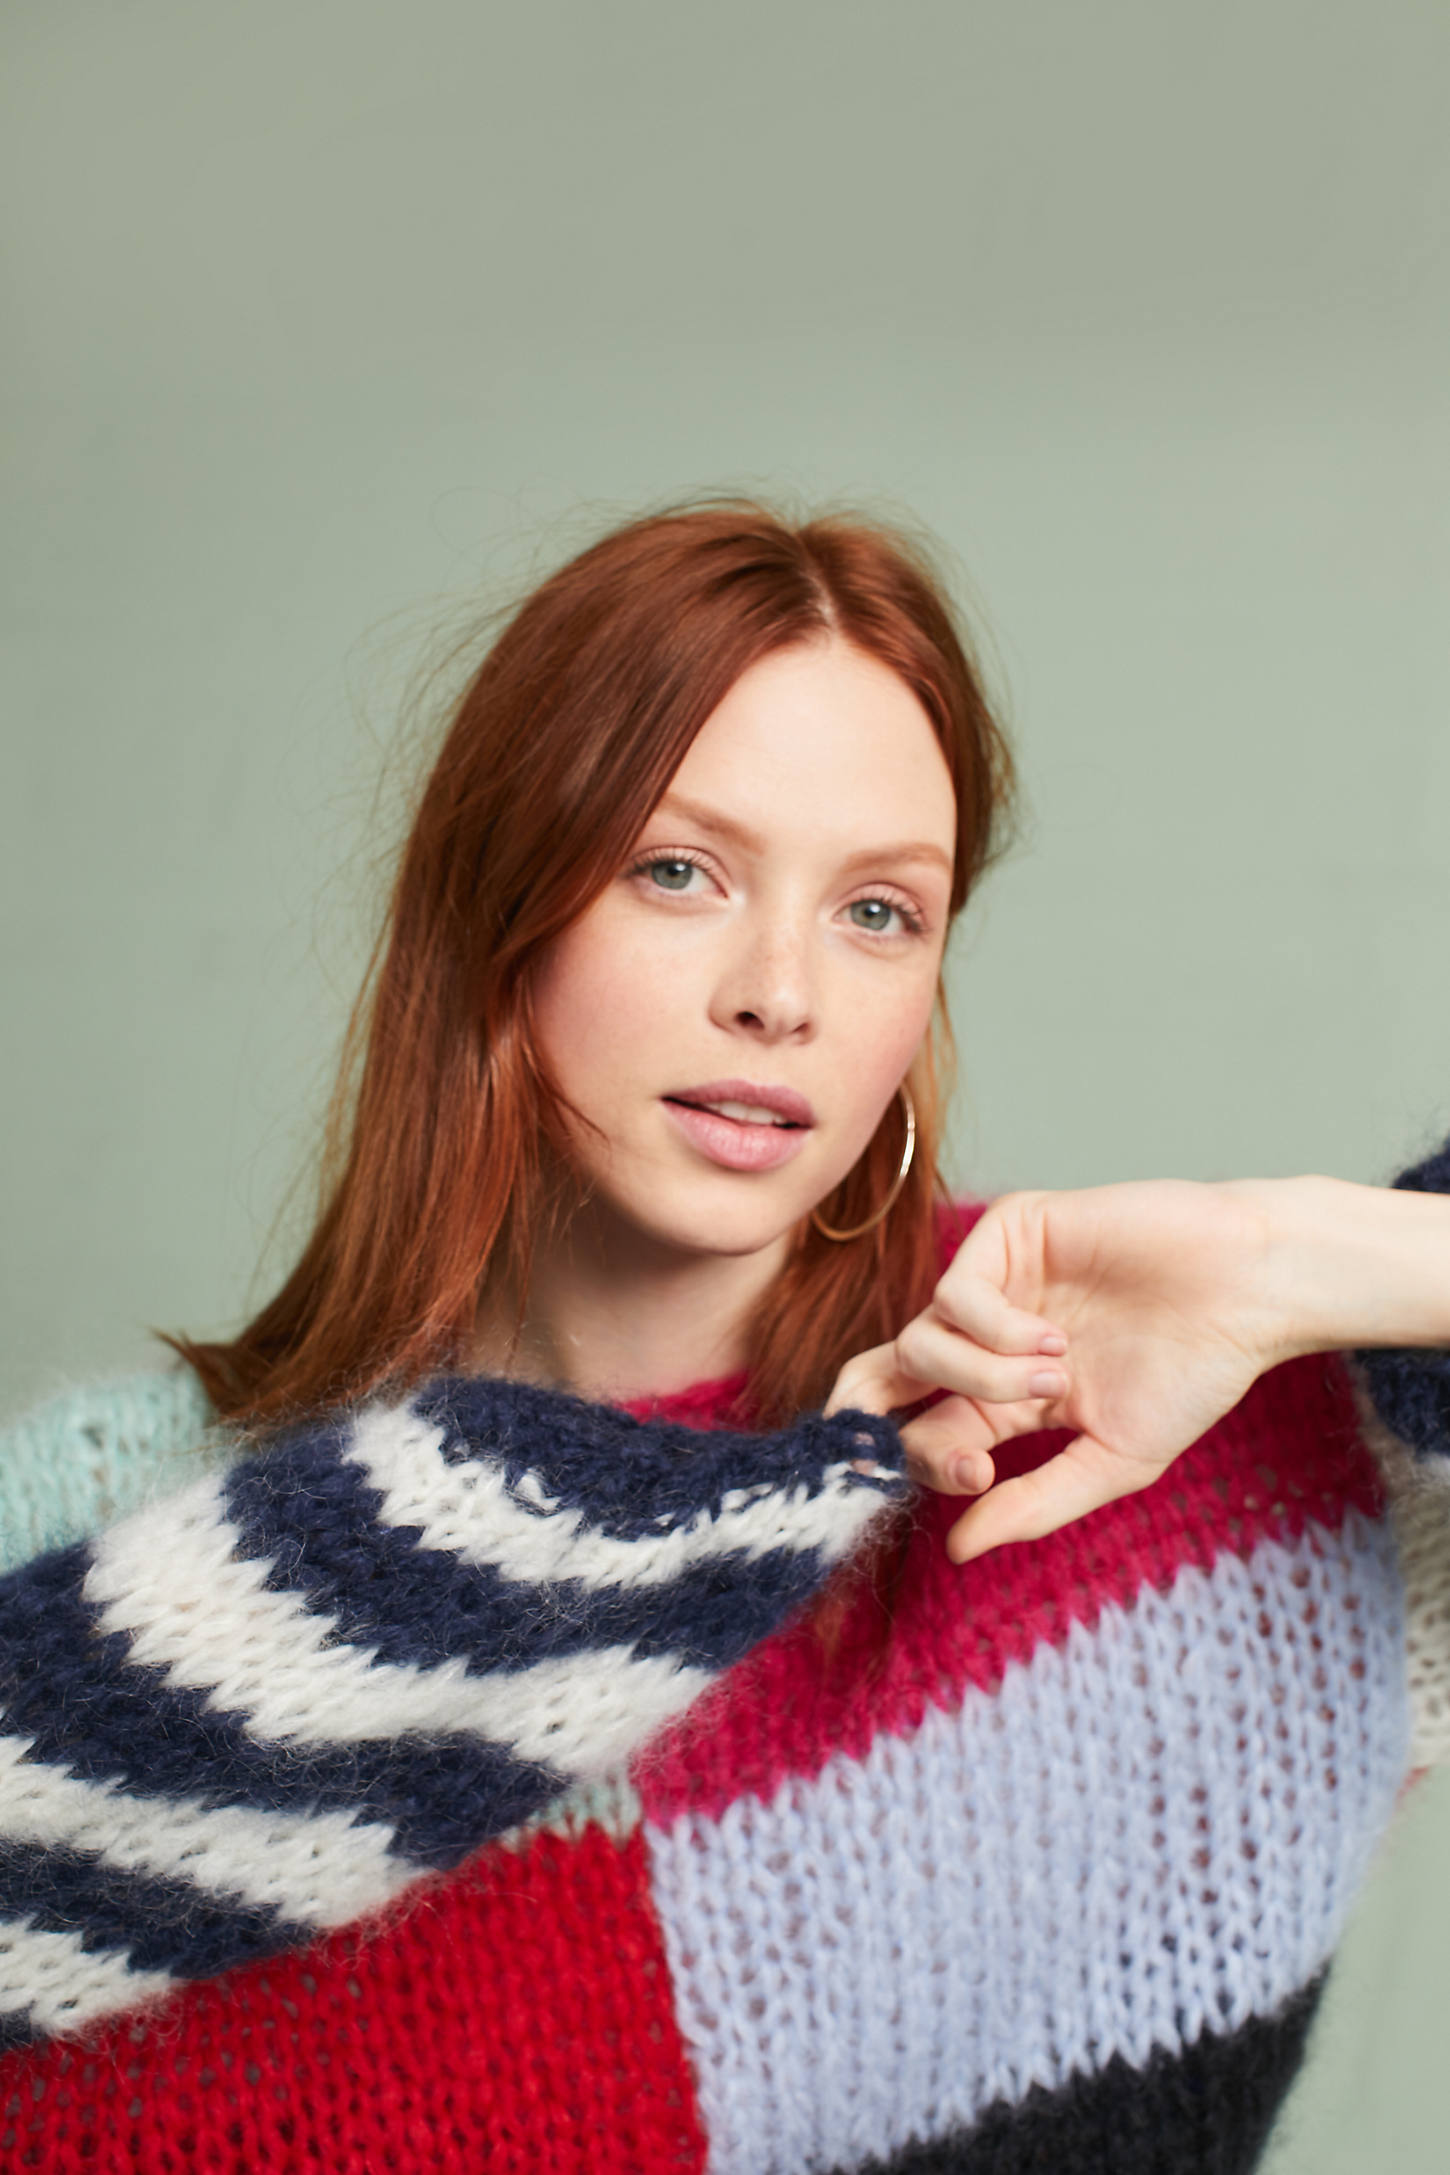 Hand-Knit Colorblocked Pullover